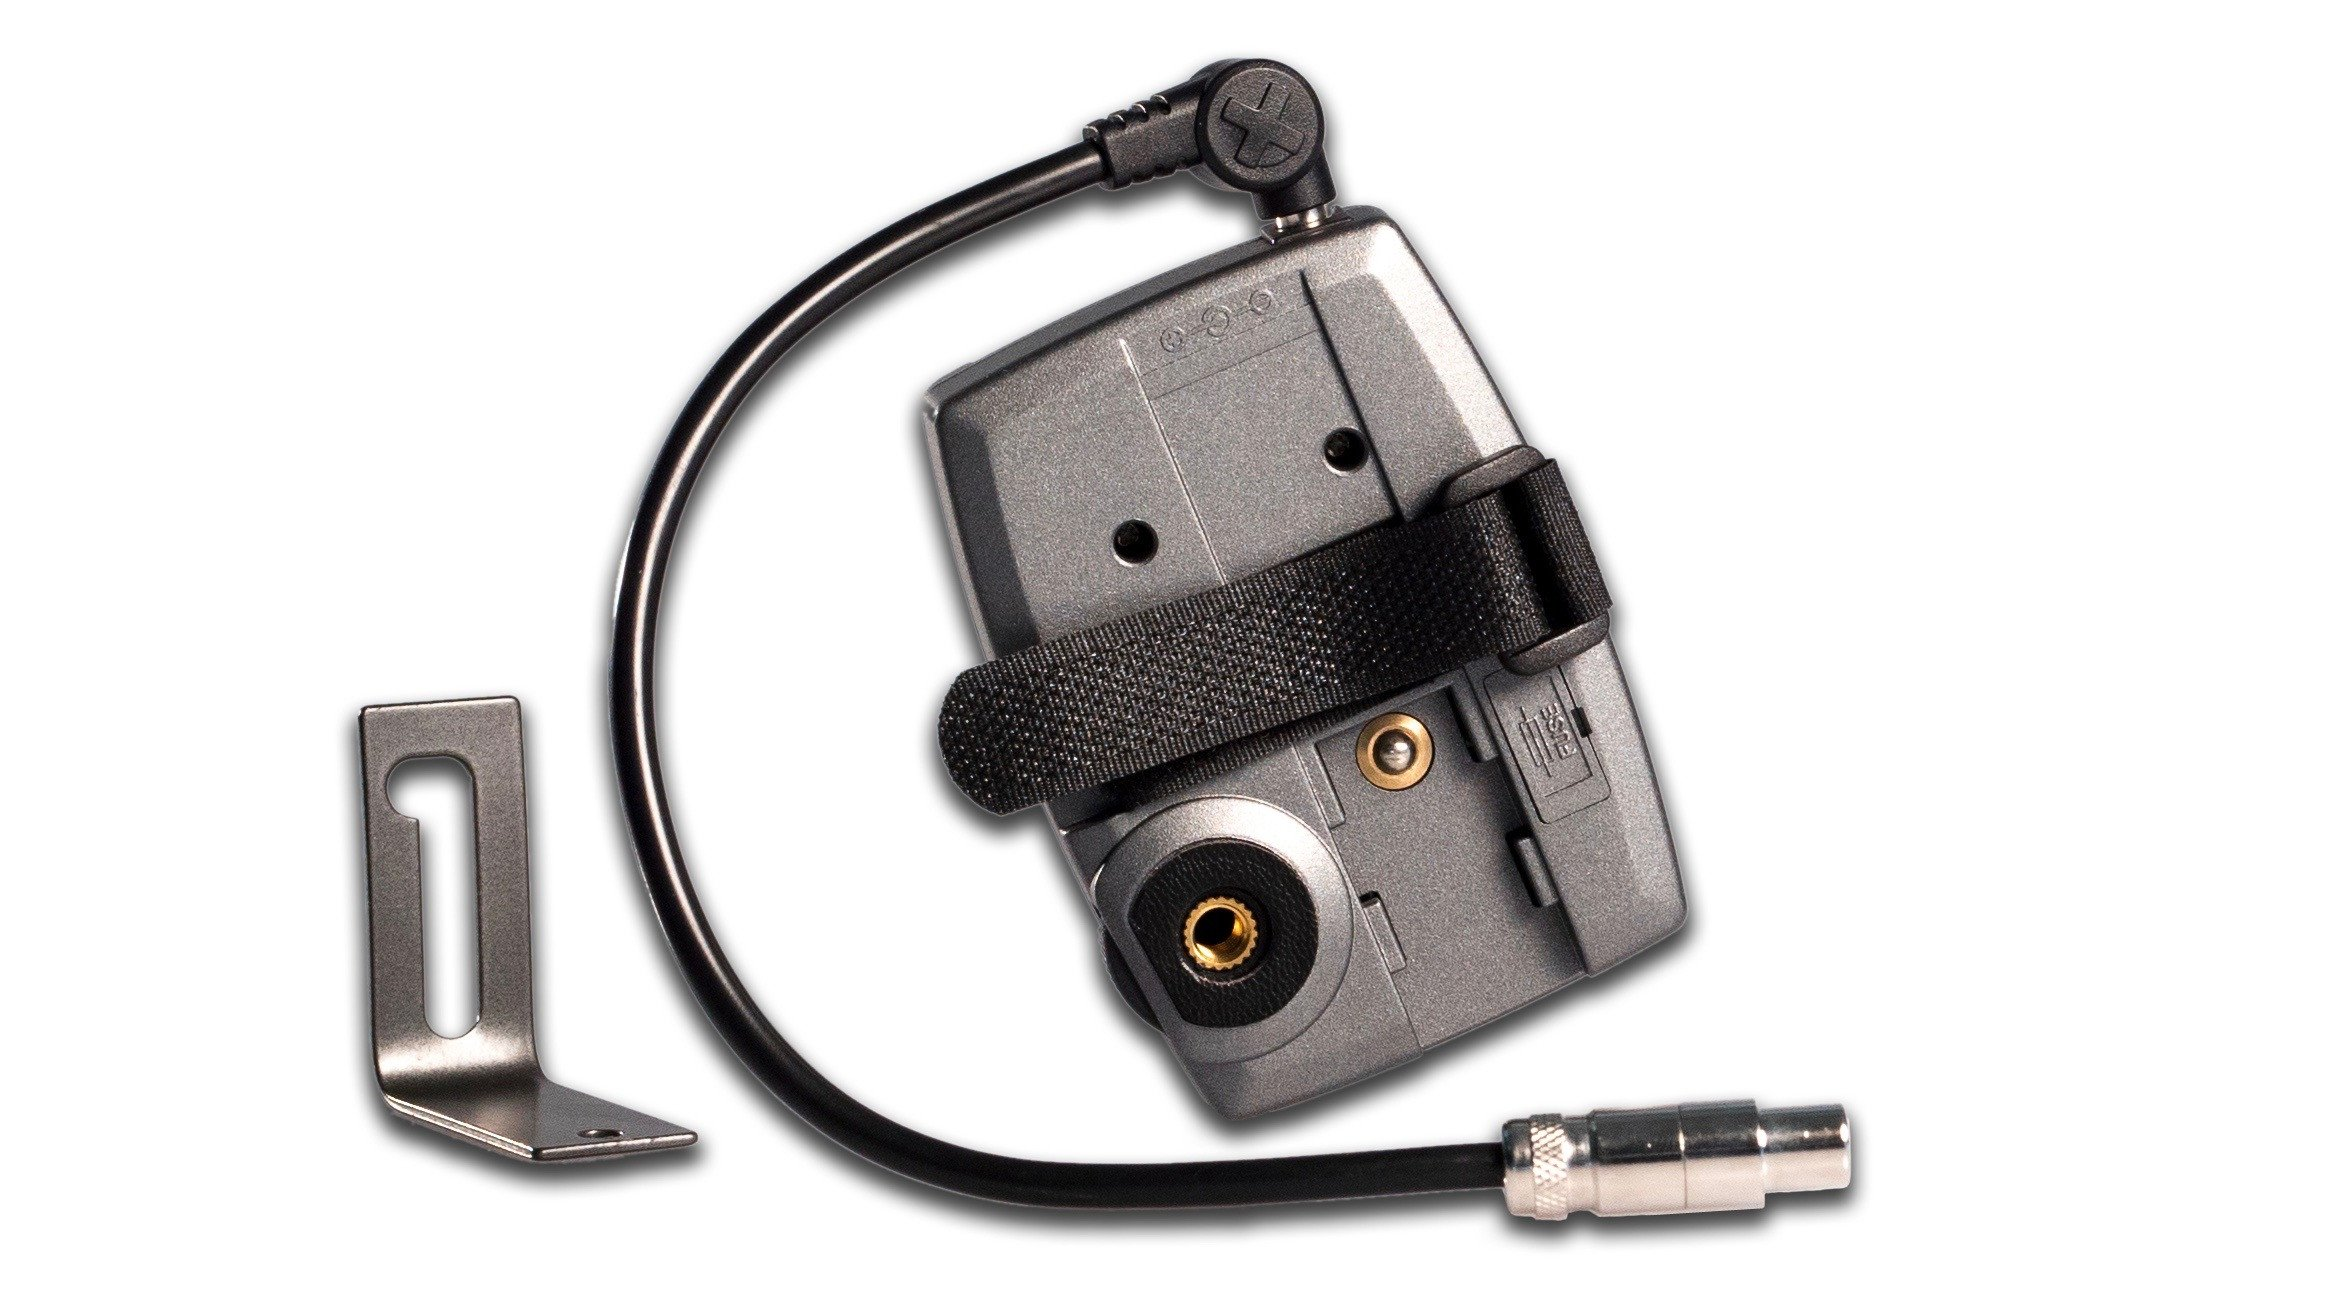 Blind Spot Gear Battery Clip & Cable